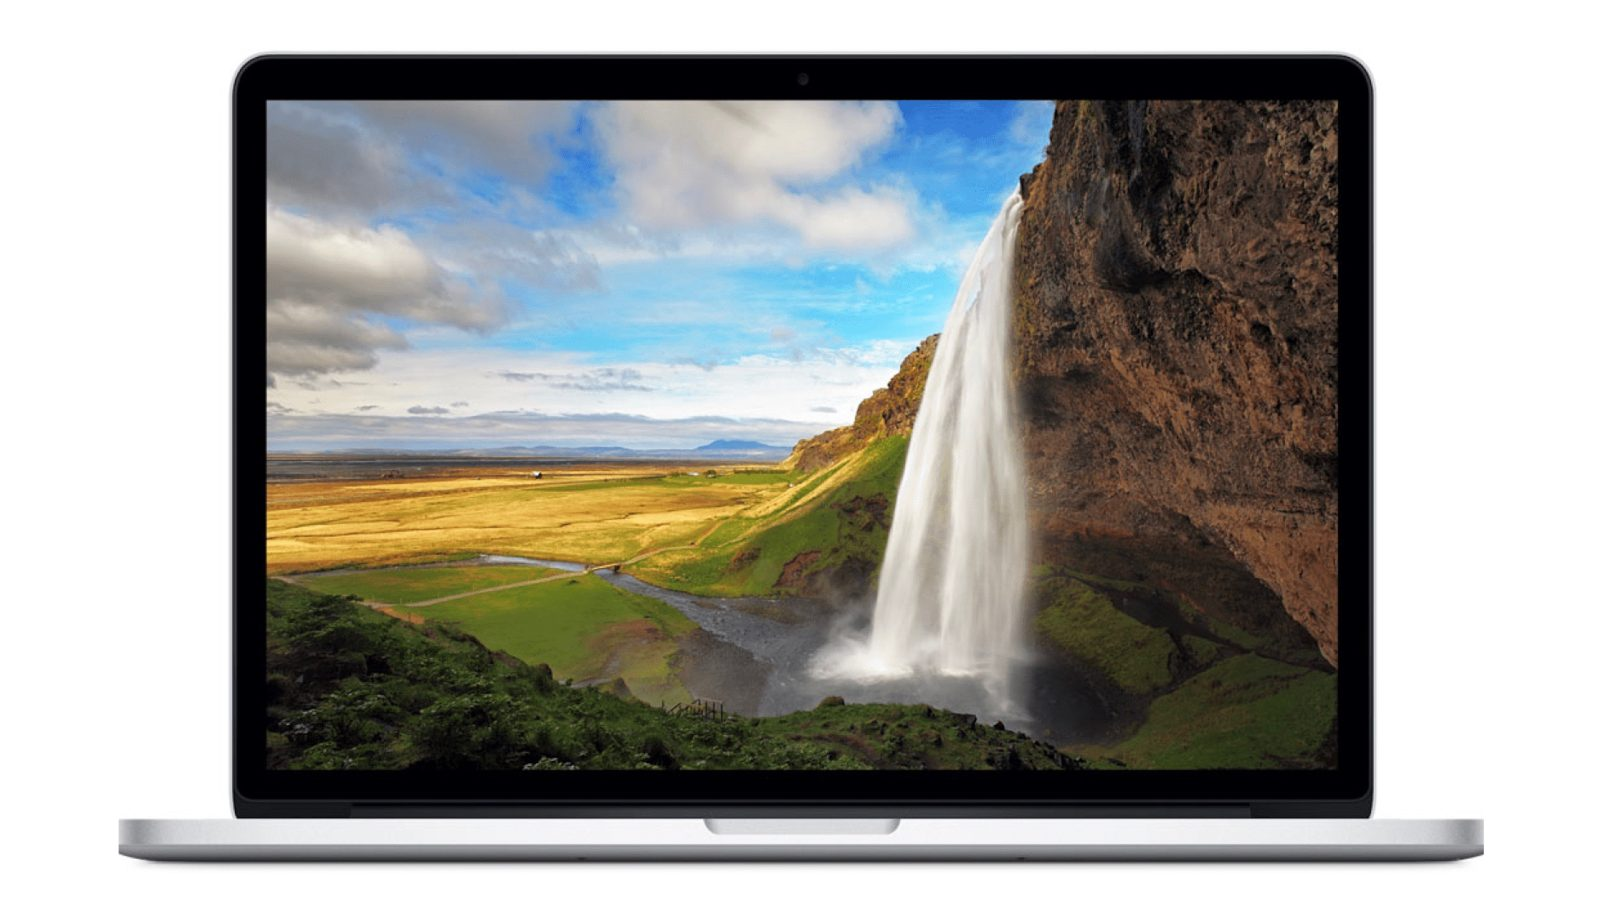 best service 207d4 52e5f Apple launches recall program for select MacBook Pros - 9to5Mac